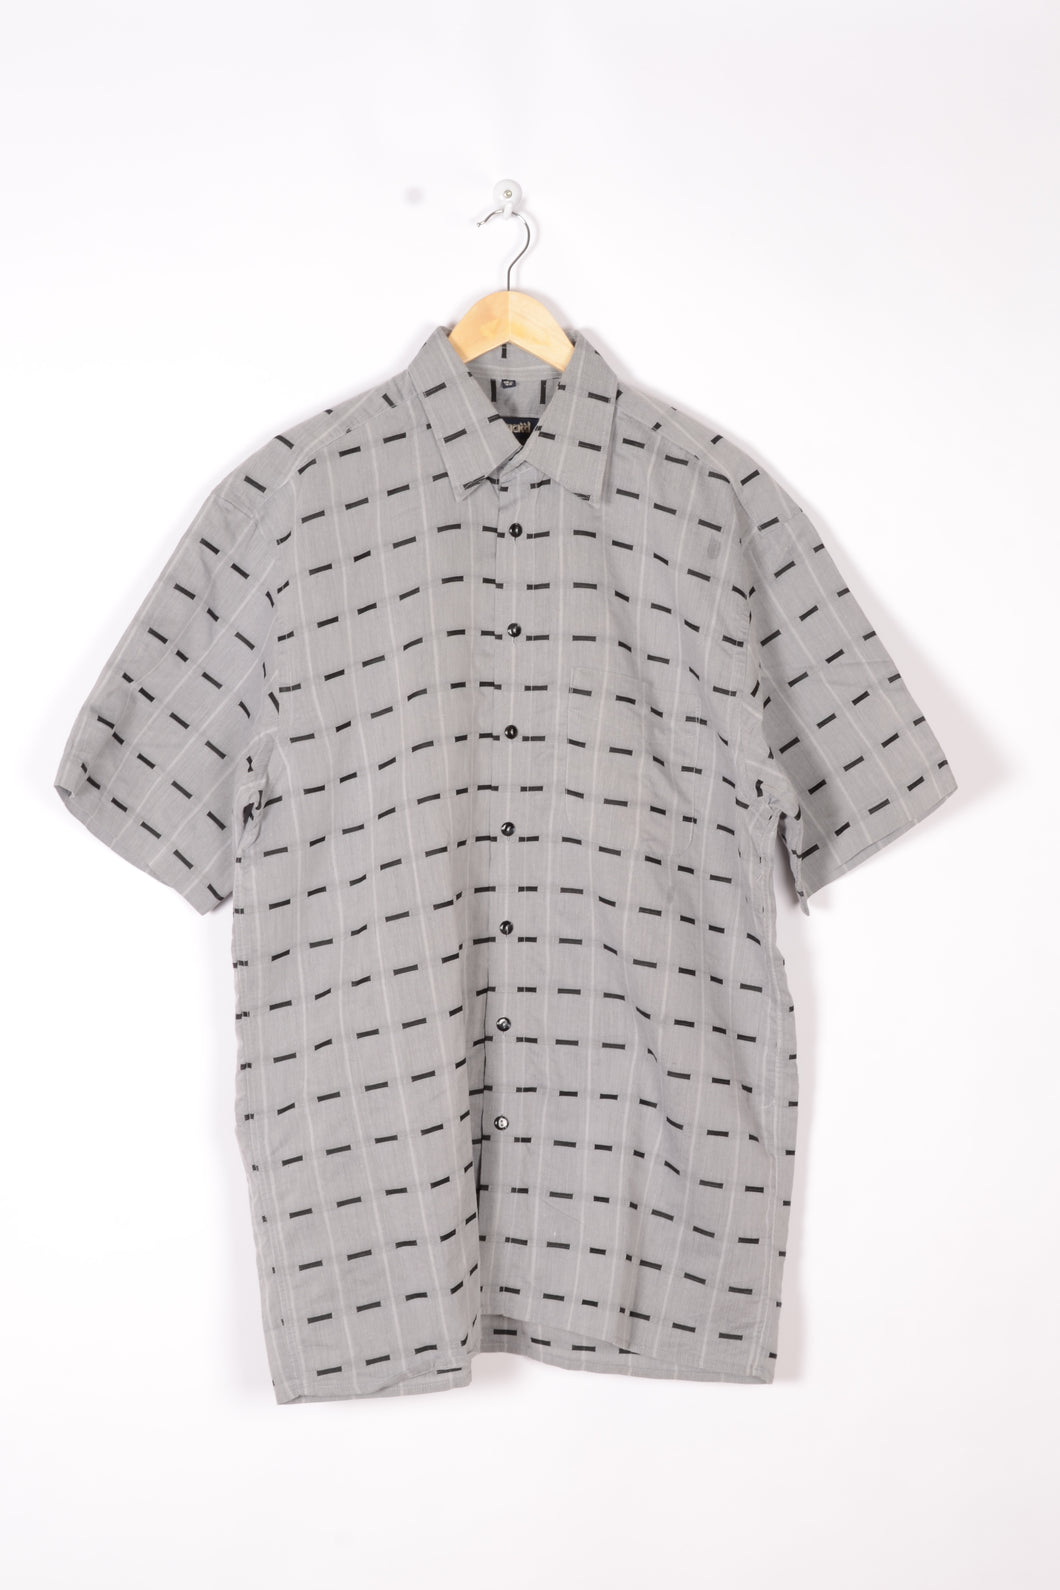 Bugatti Men's Shirt Vintage 90s Grey/Black Large XL